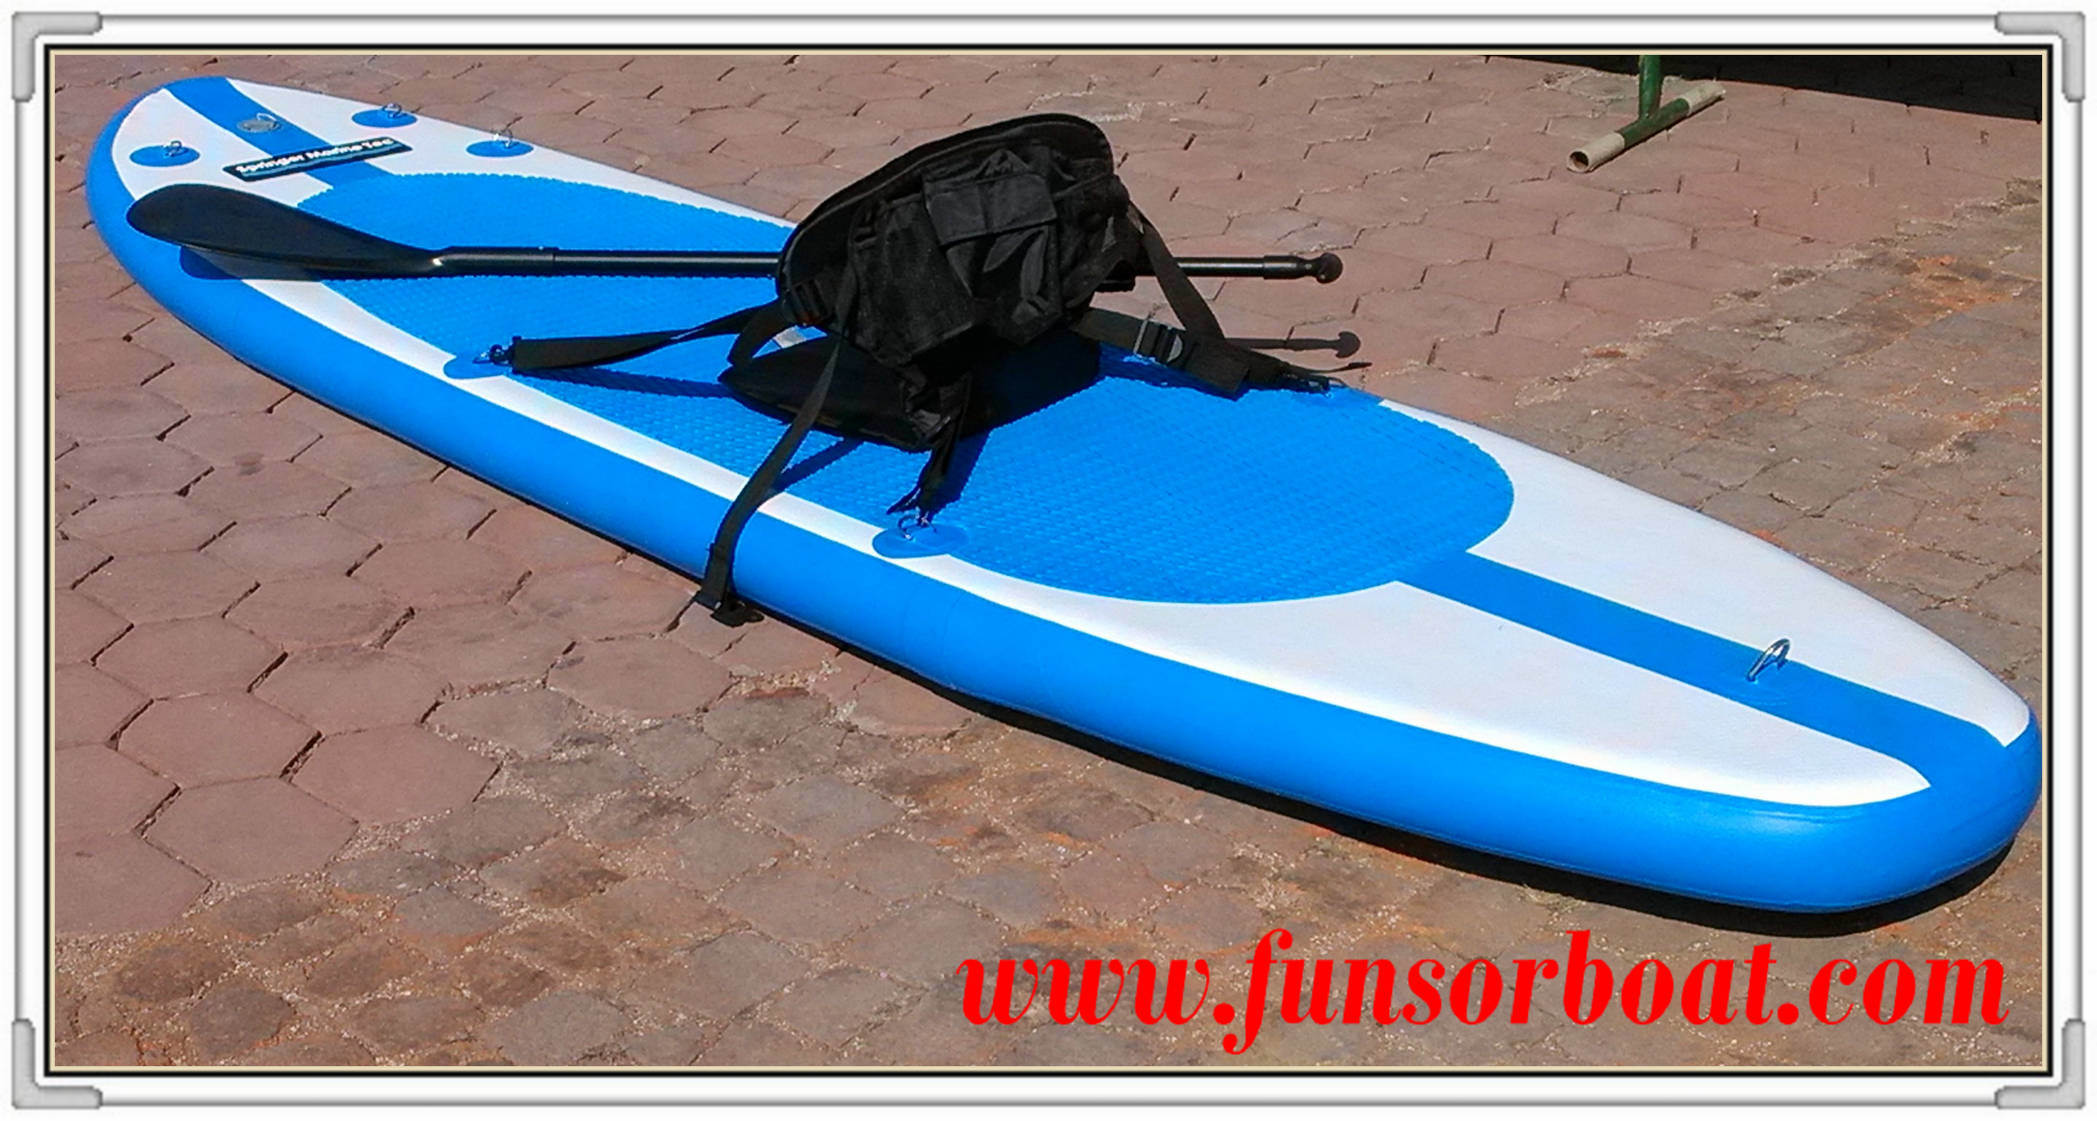 3 3m gonflable stand up paddle board fws i330 3 3m gonflable stand up paddle board fws